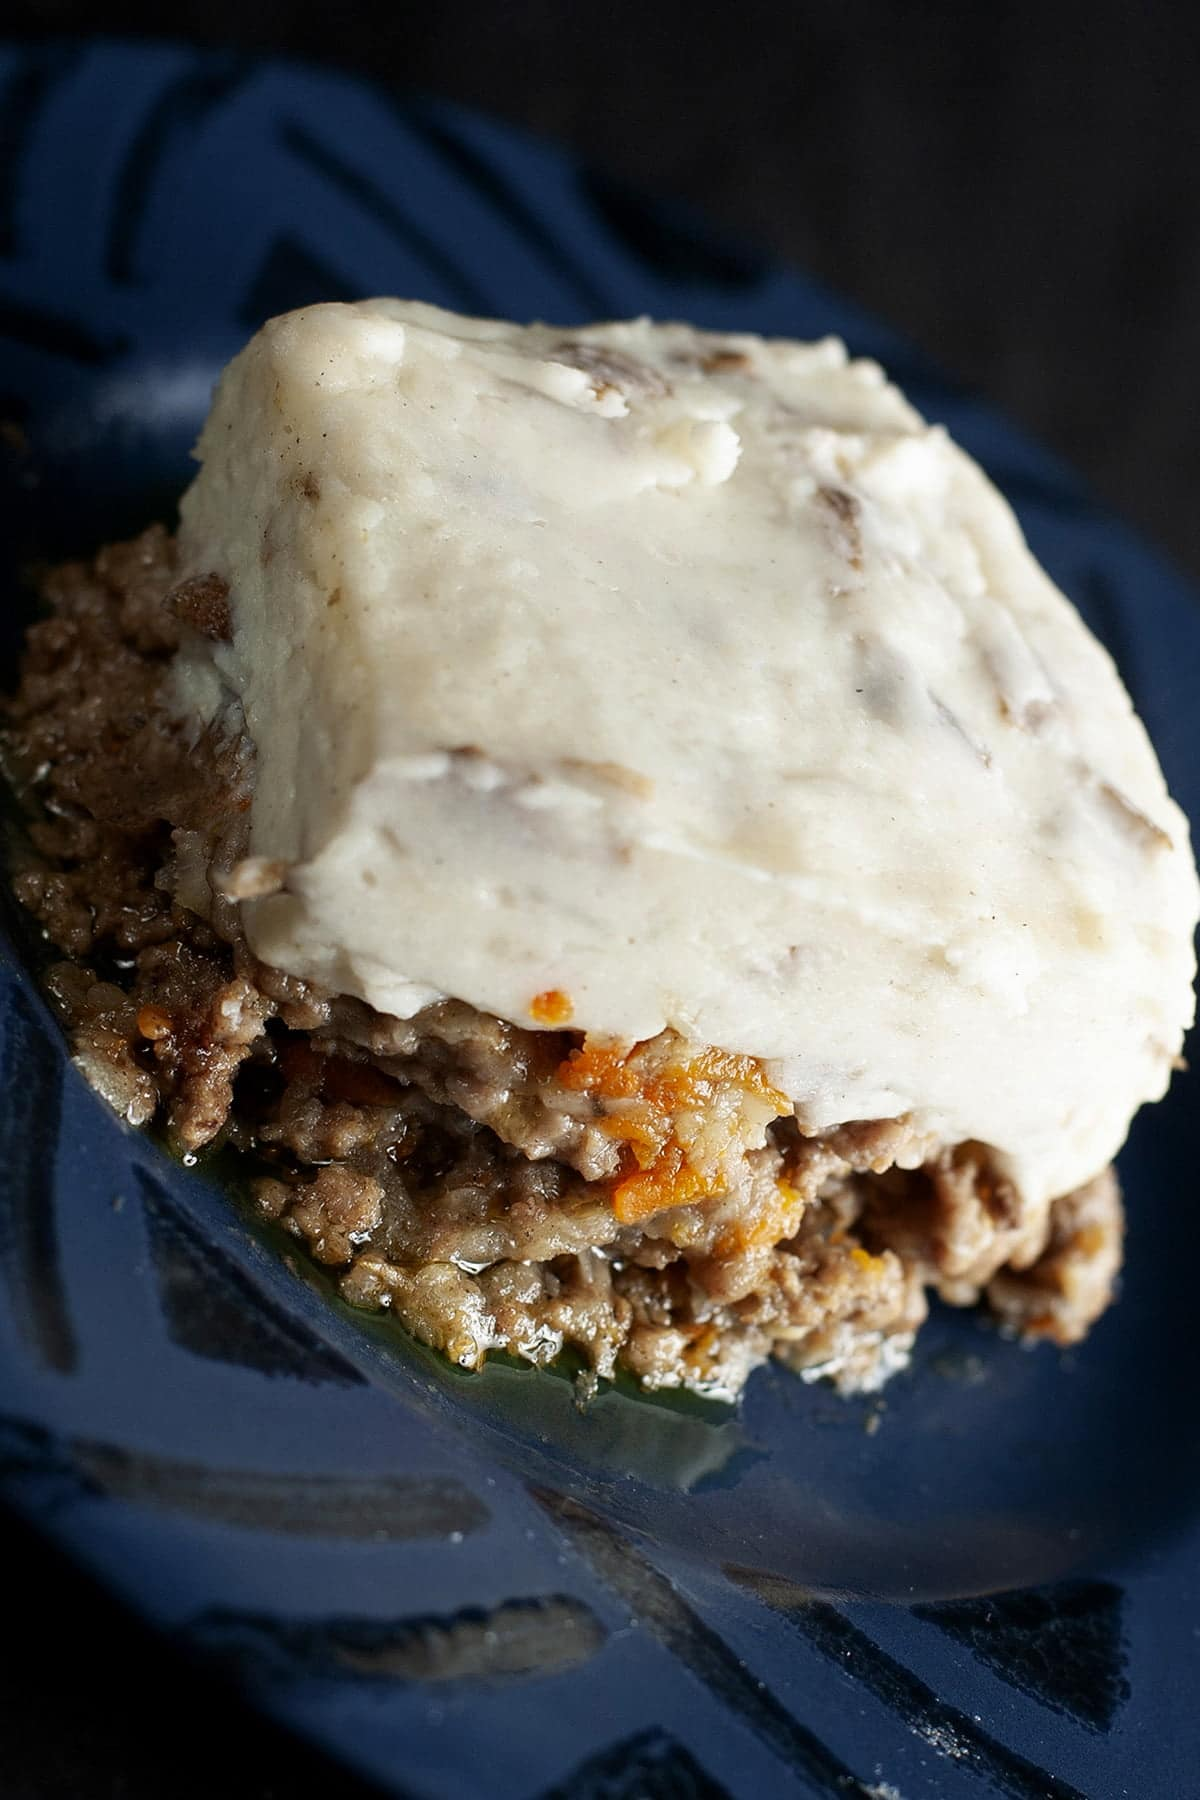 A square serving of cottage pie is centered on a blue plate. Carrots and parsnips are visible in the meat/veg base, and it's topped with a thick layer of mashed potatoes.